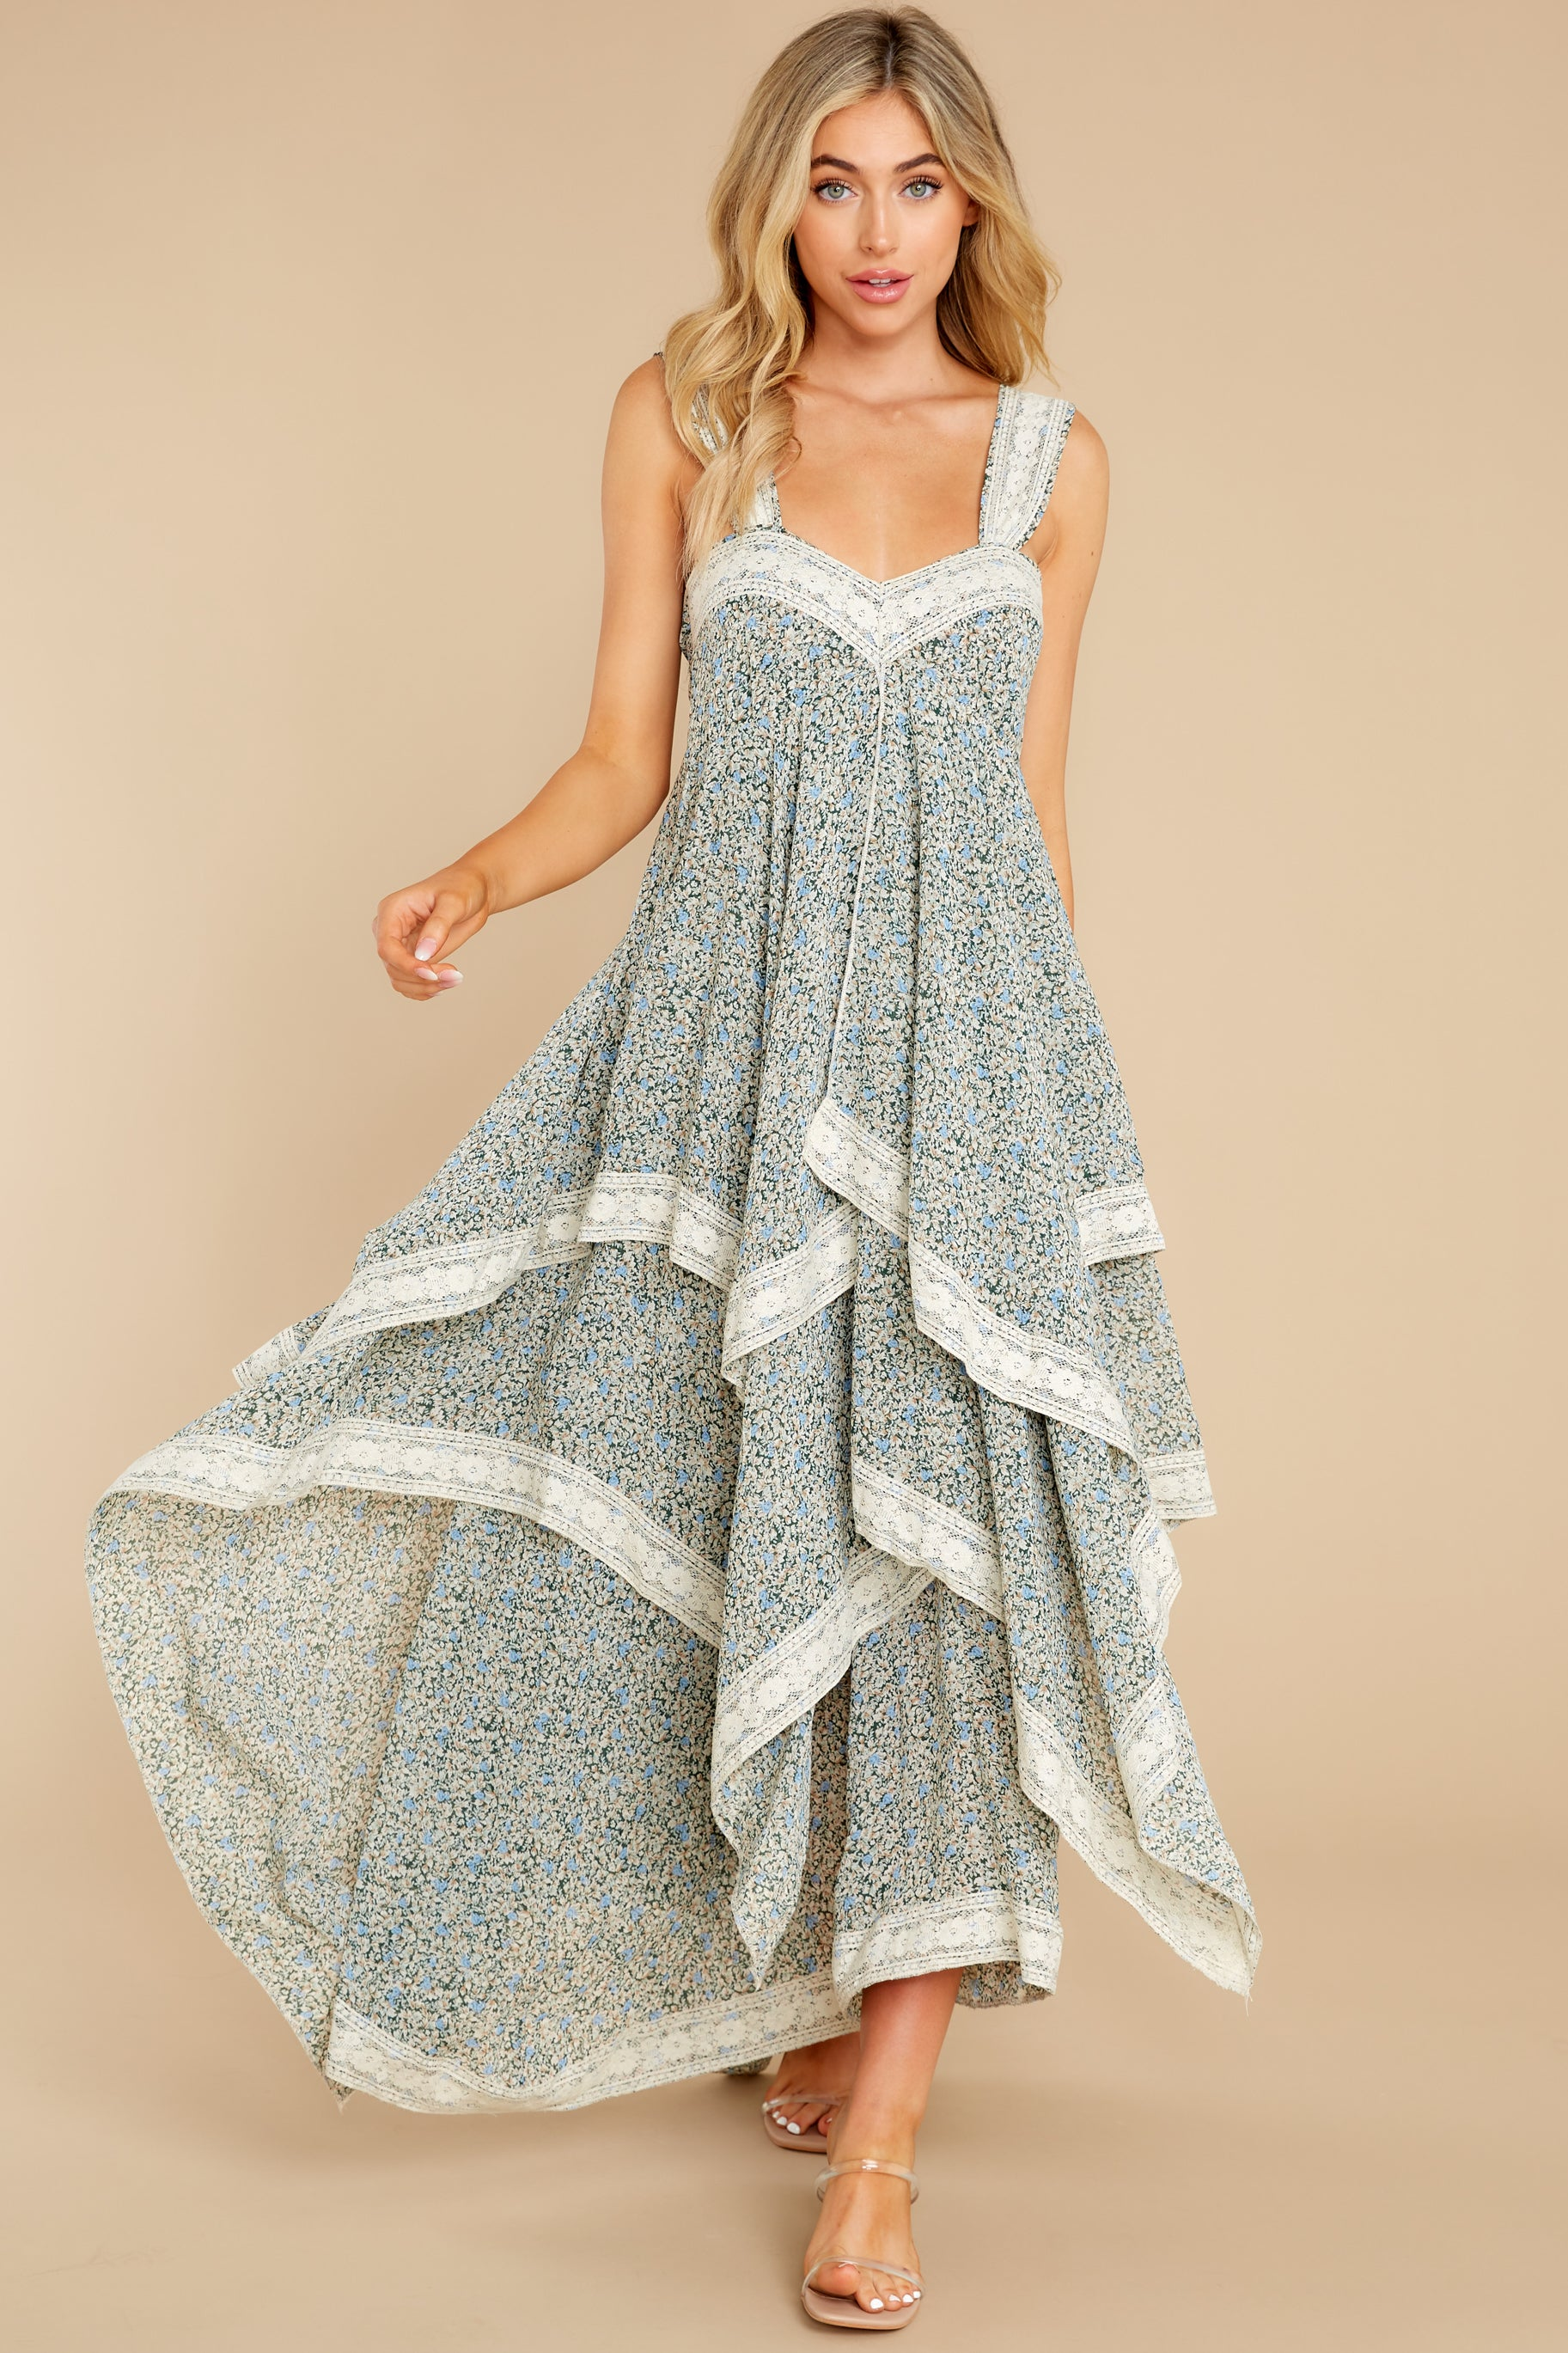 6 Fall In Love Sage Green Floral Print Maxi Dress at reddress.com